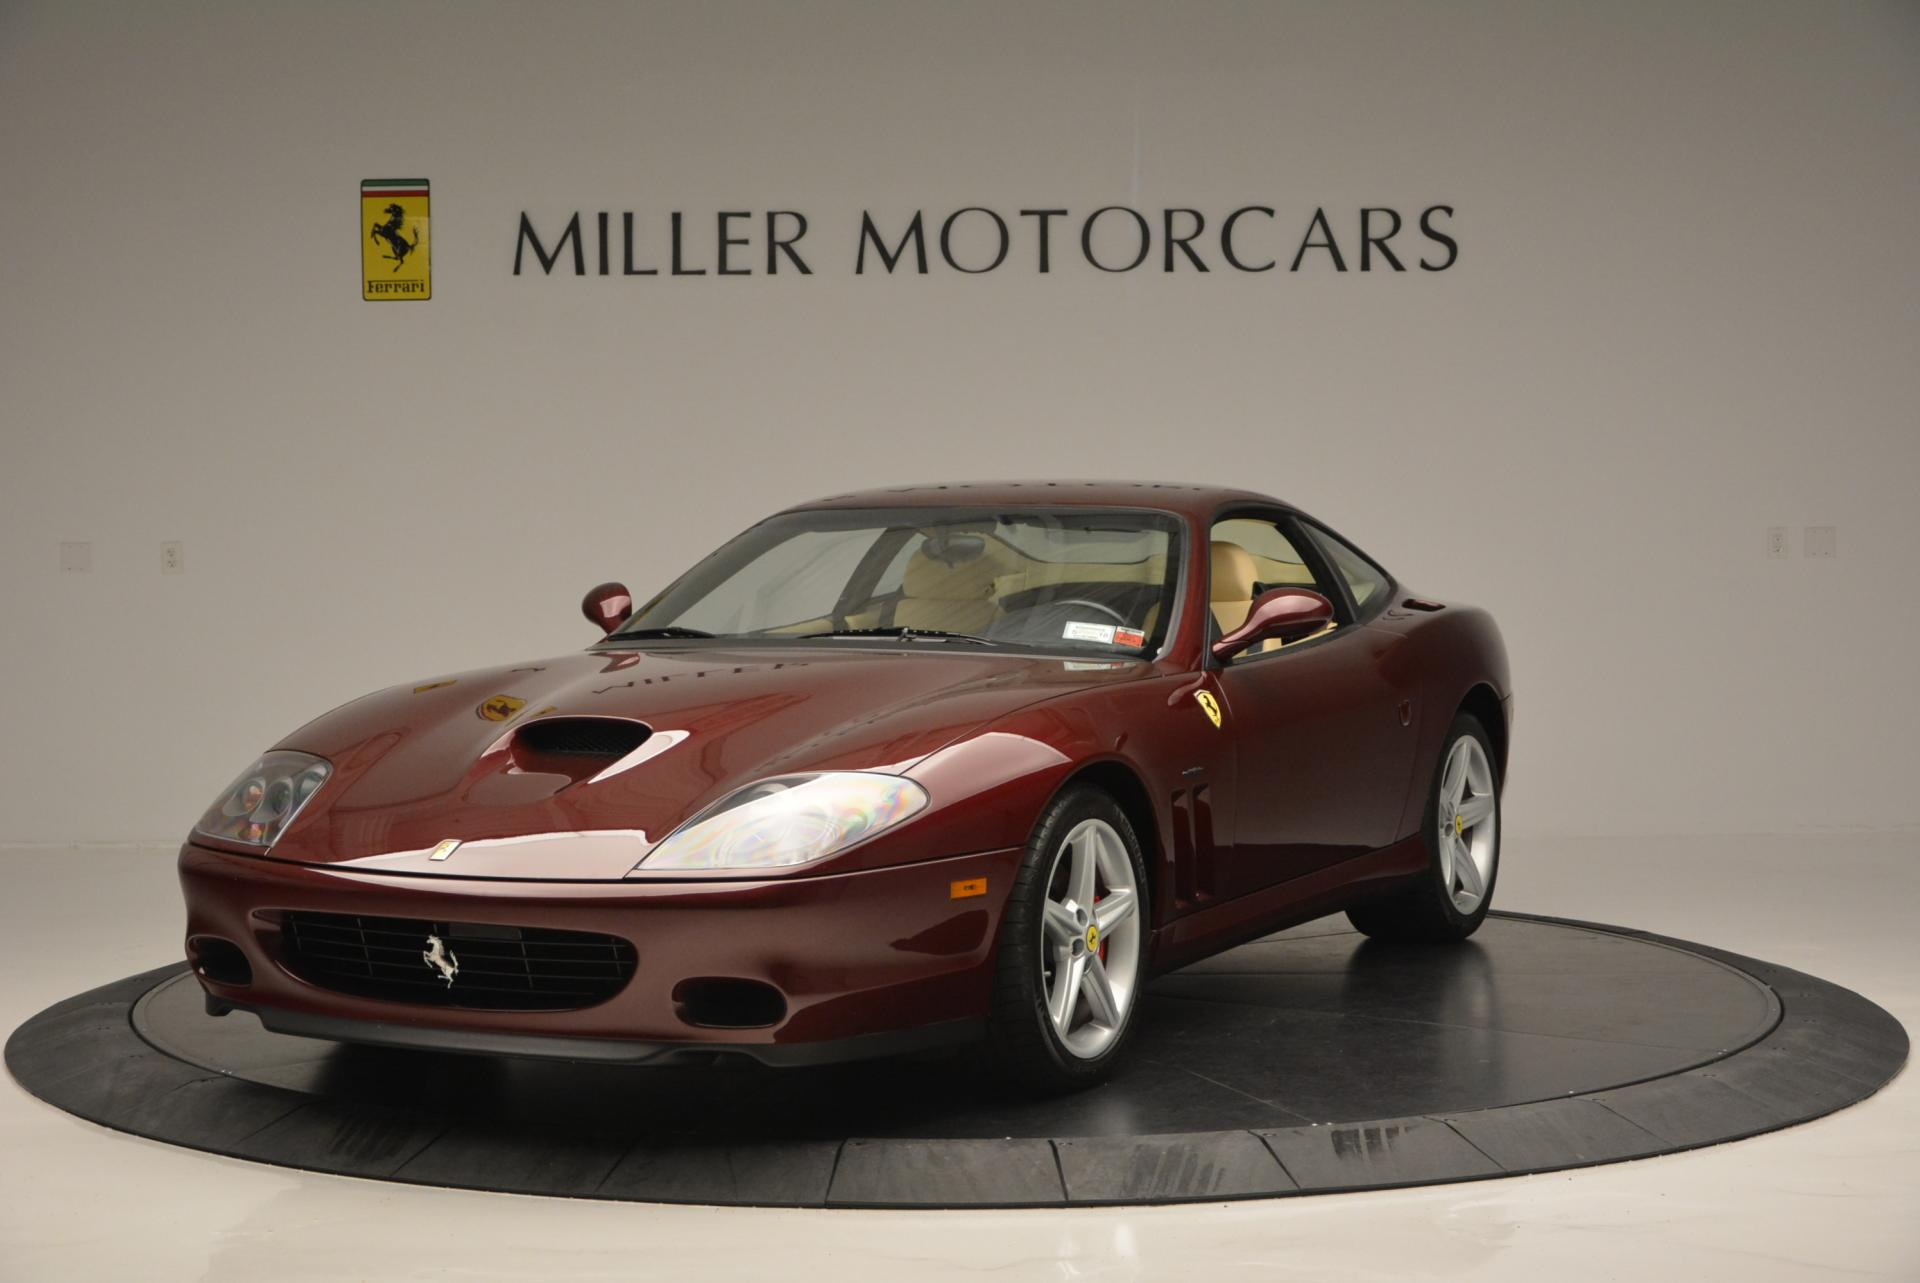 Used 2003 Ferrari 575M Maranello 6-Speed Manual for sale Sold at McLaren Greenwich in Greenwich CT 06830 1